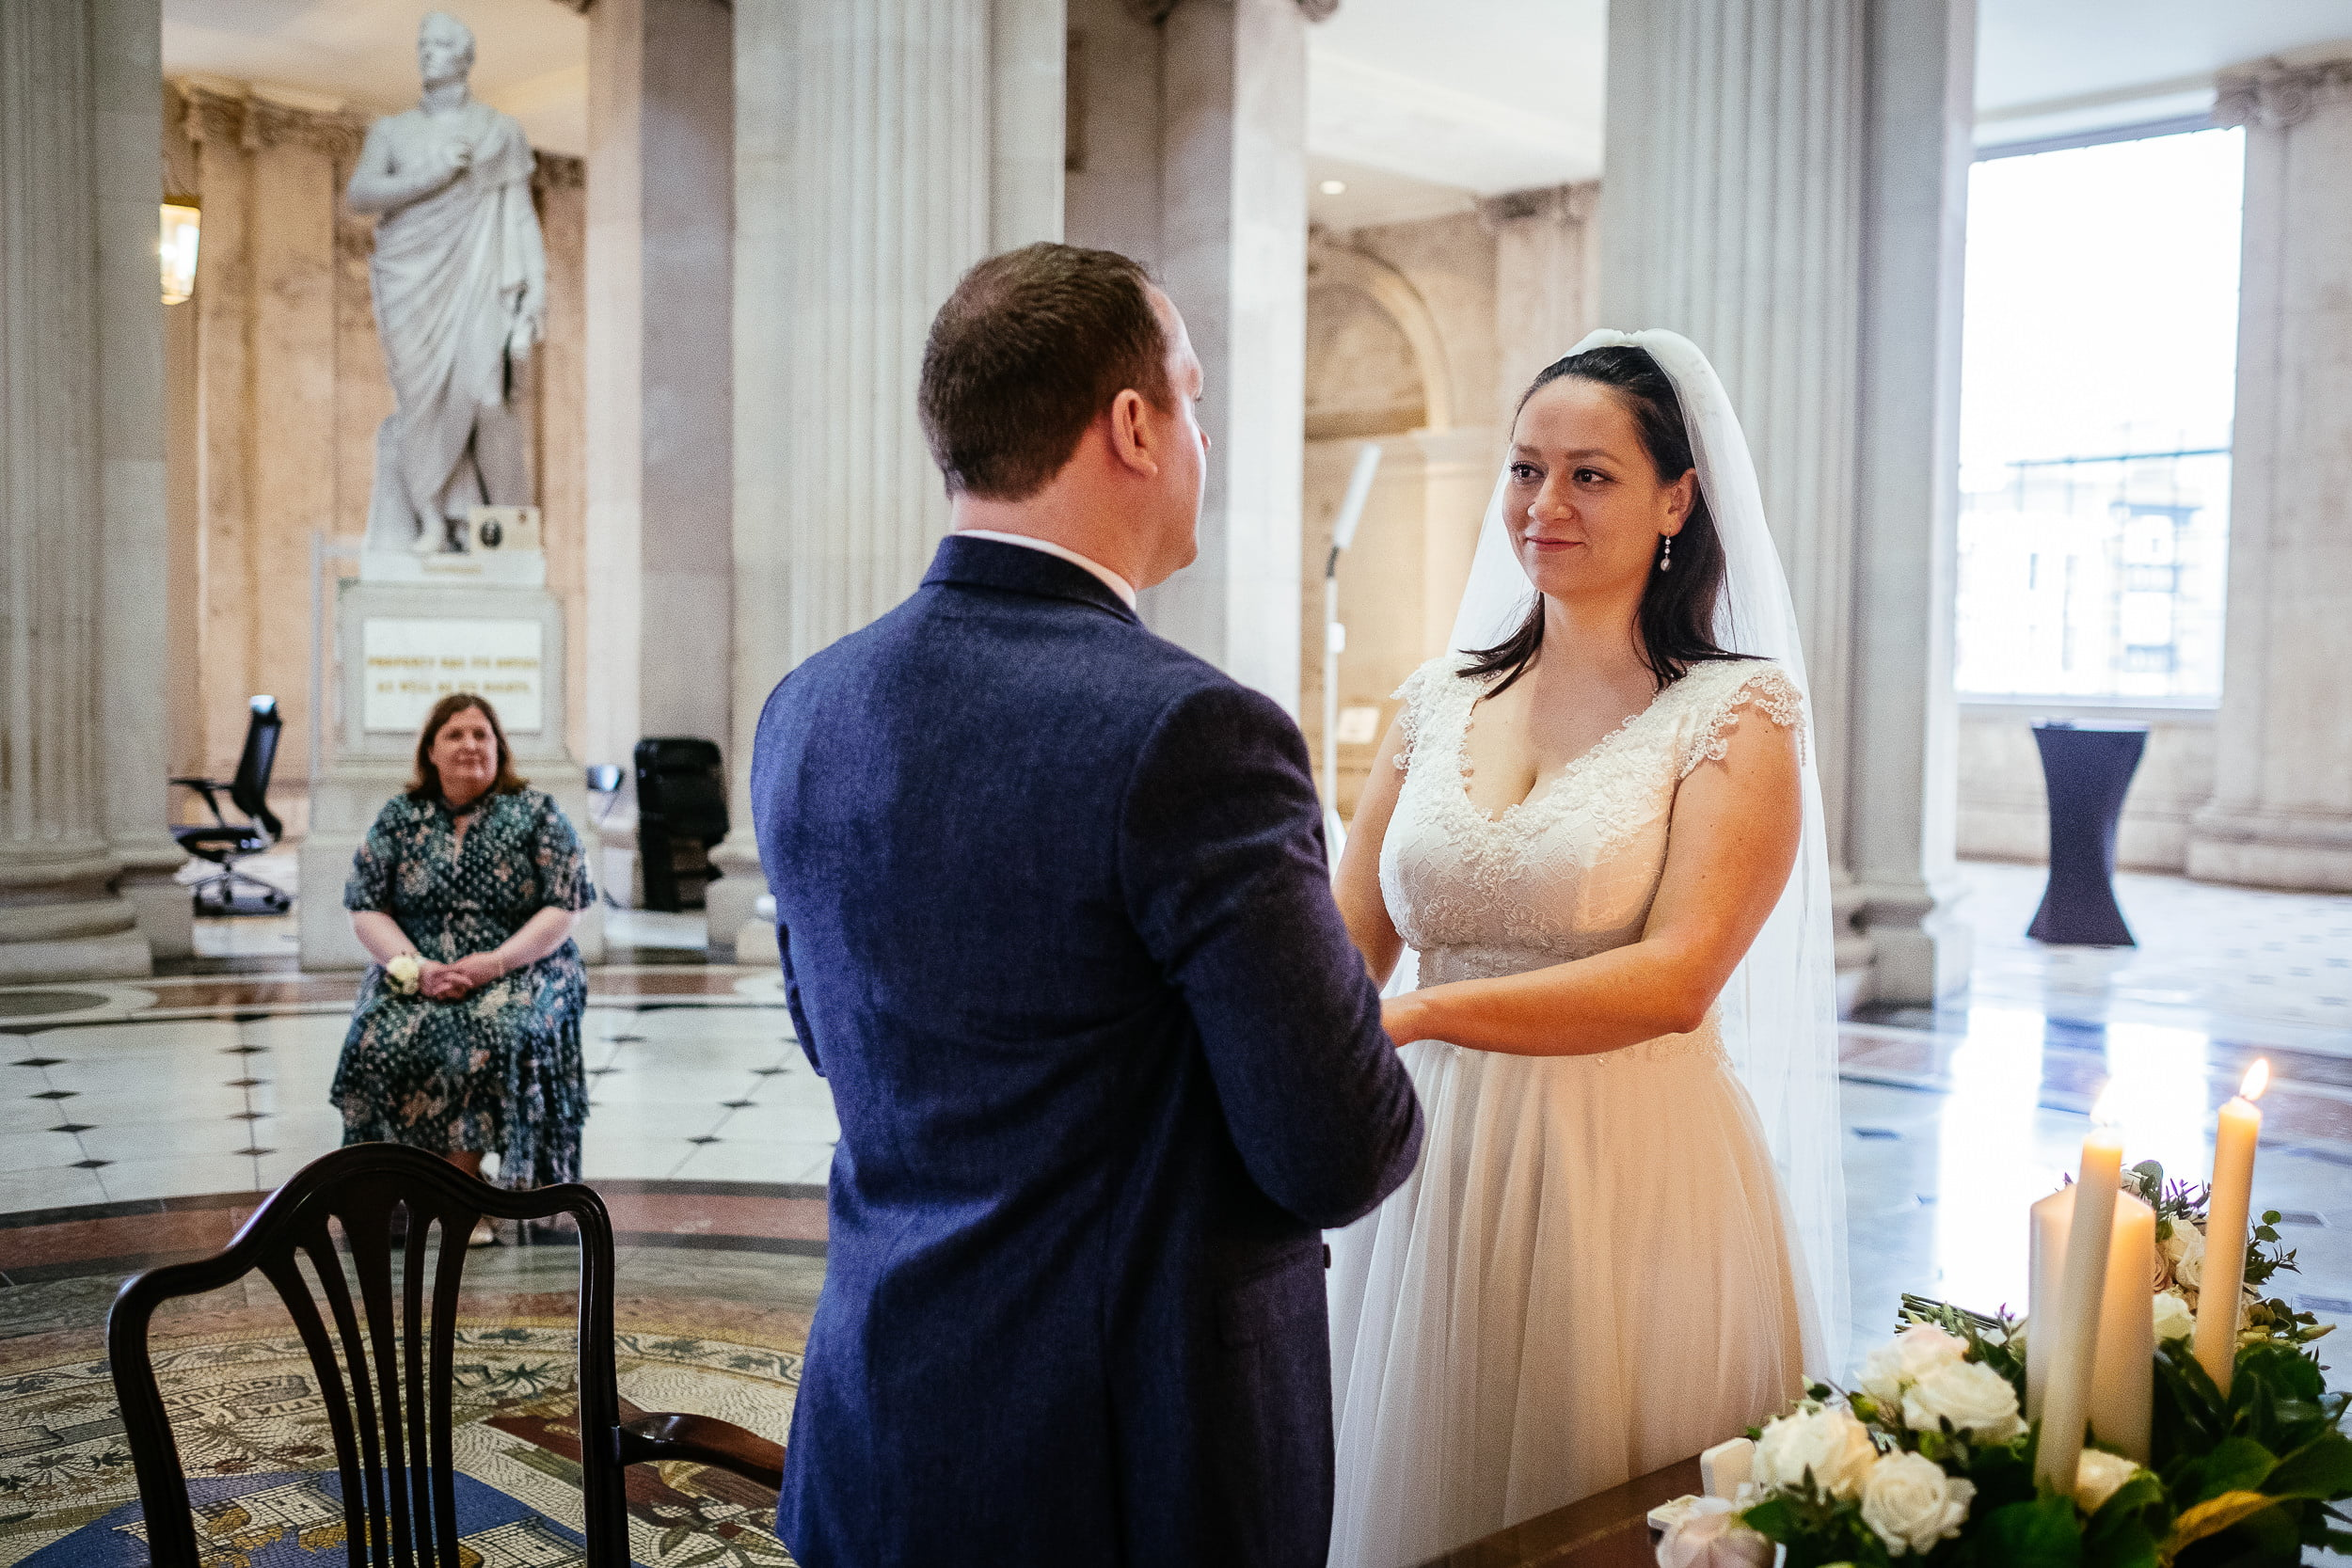 bride and groom exchanging vows at their City Hall Wedding Dublin